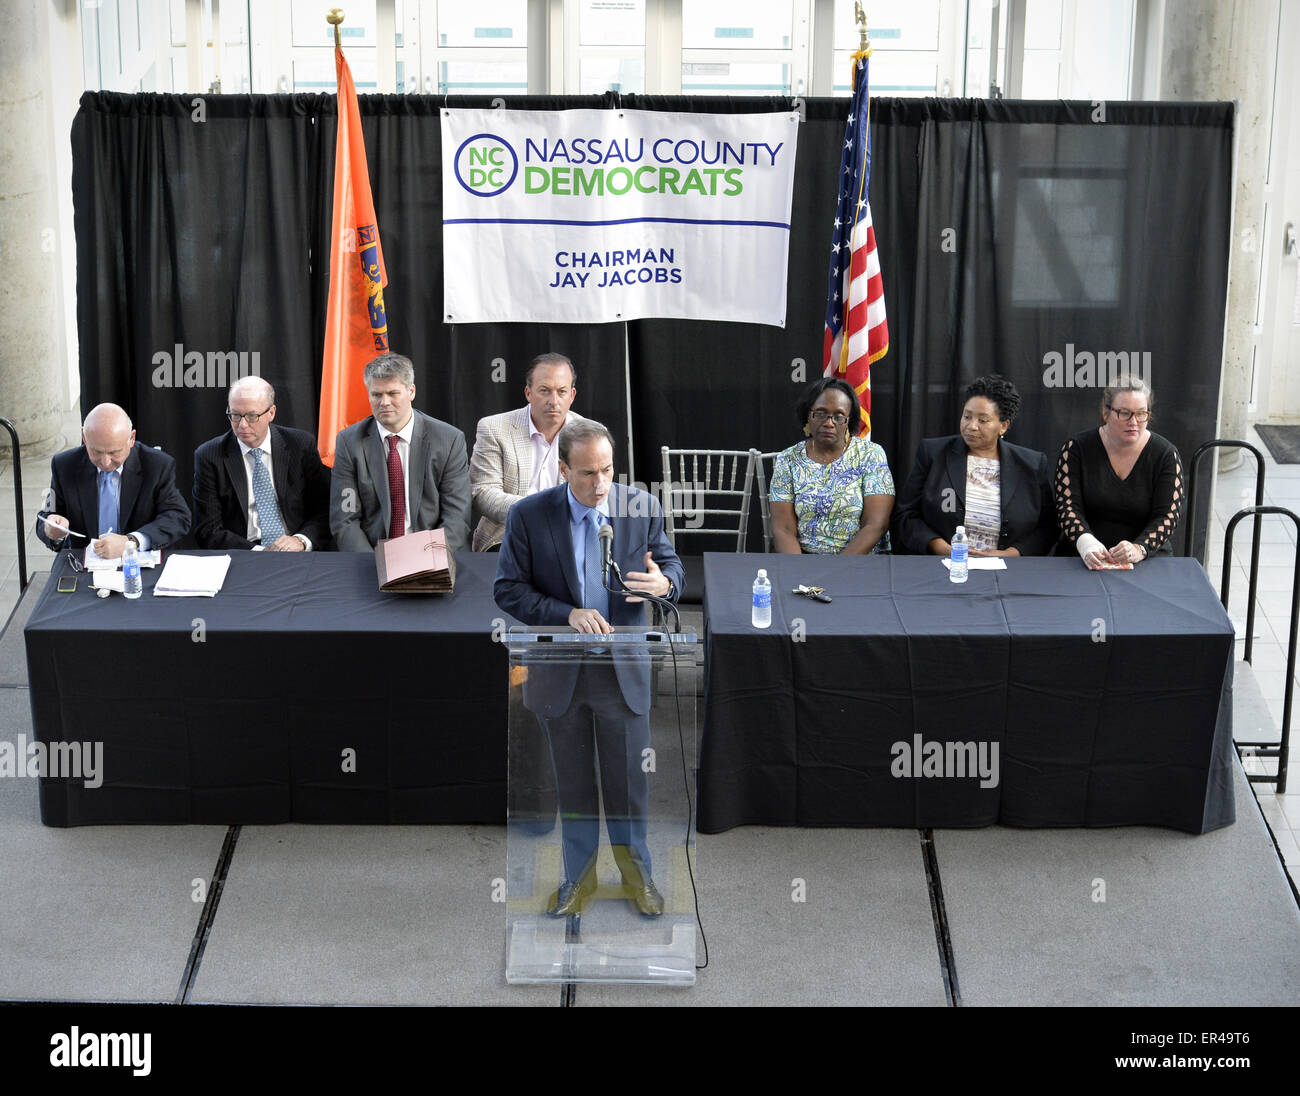 Garden City, New York, USA. 26th May, 2015. JAY JACOBS, Chairman of the Nassau County Democrats, speaks at the podium - Stock Image